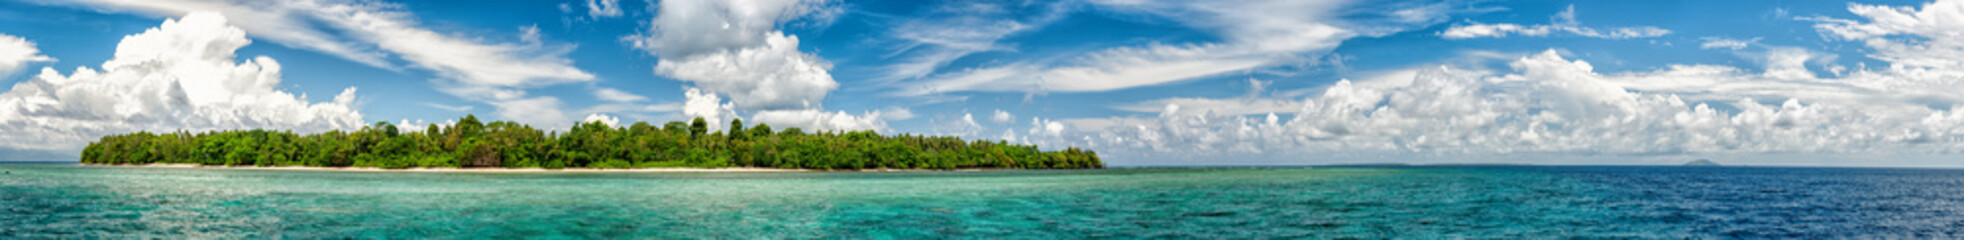 Indonesia Siladen island turquoise tropical paradise view